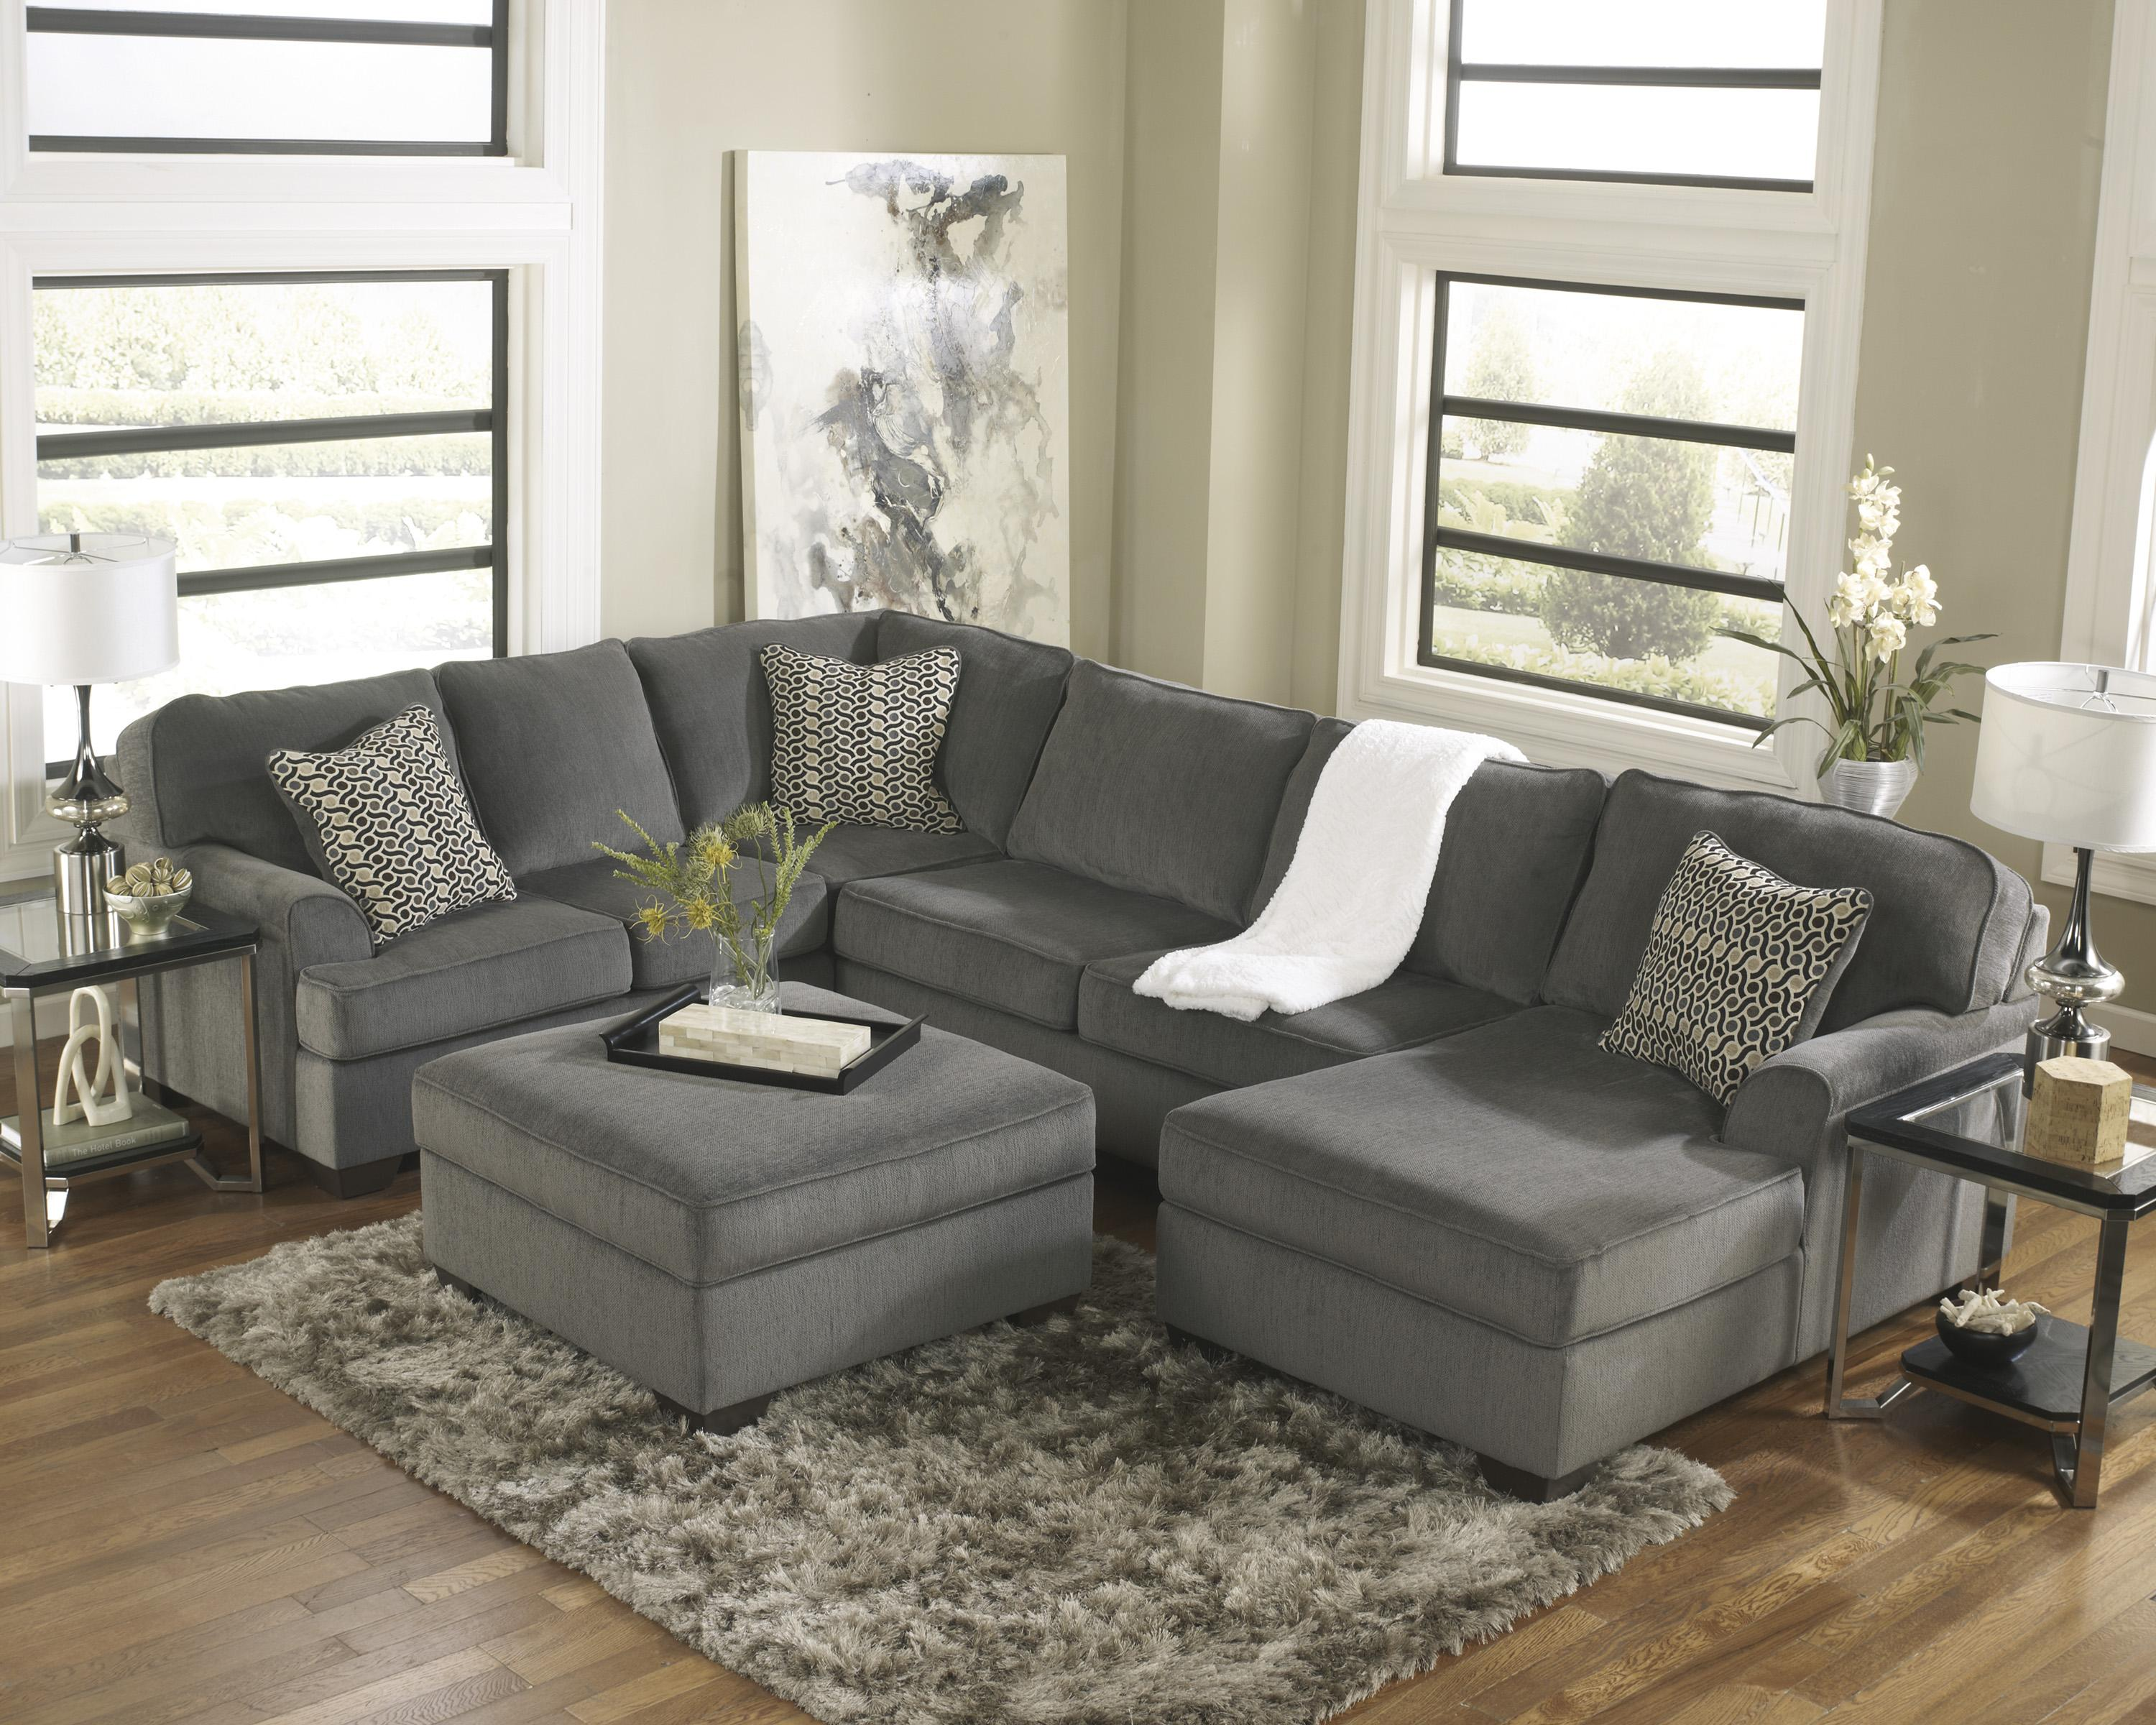 Ashley Furniture Loric Smoke Contemporary 3 Piece Sectional With Right Chaise John